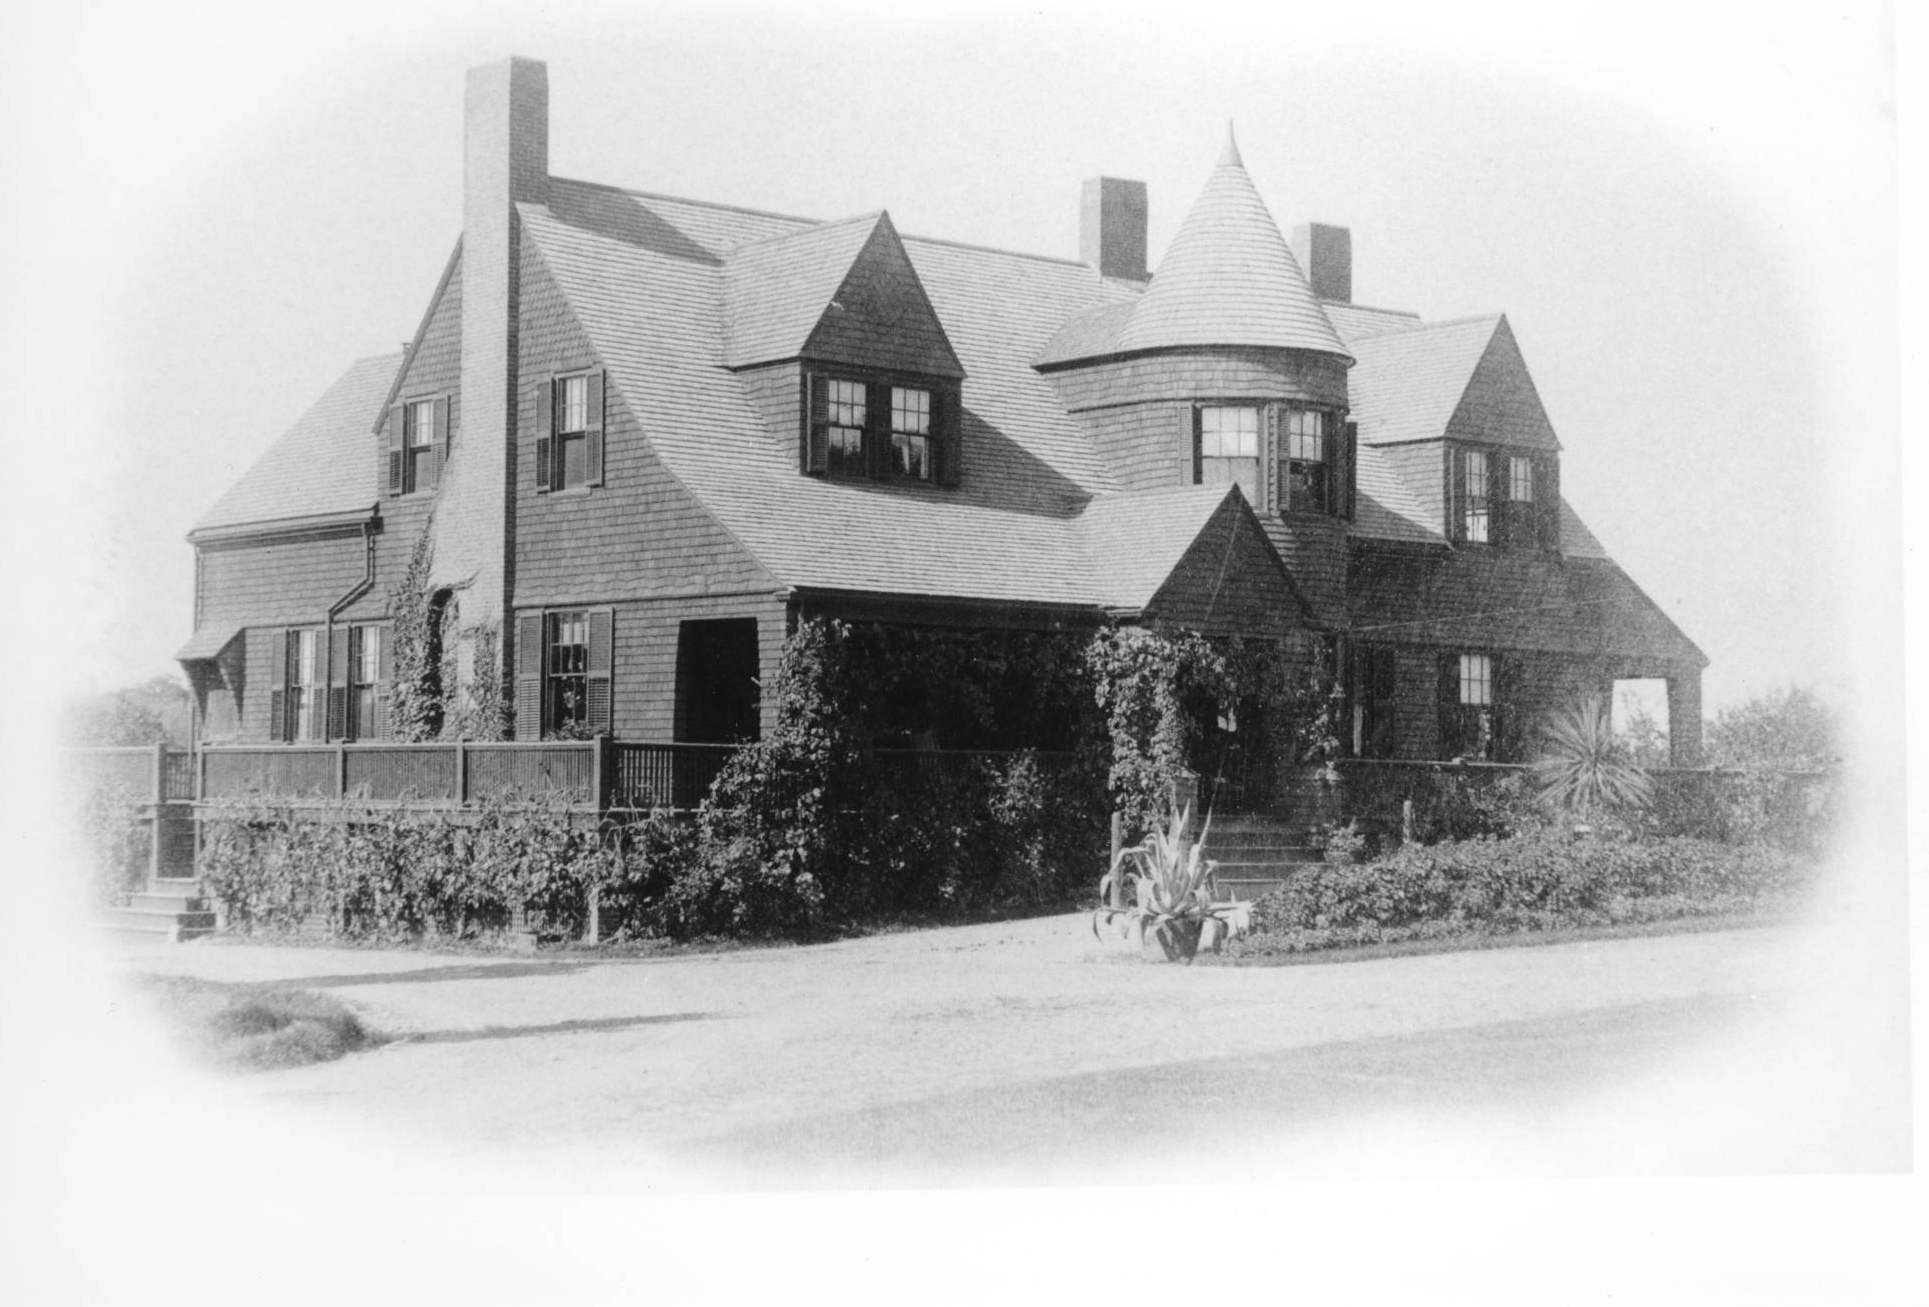 Francis Henry Hastings built this house at 199 North Avenue in 1885